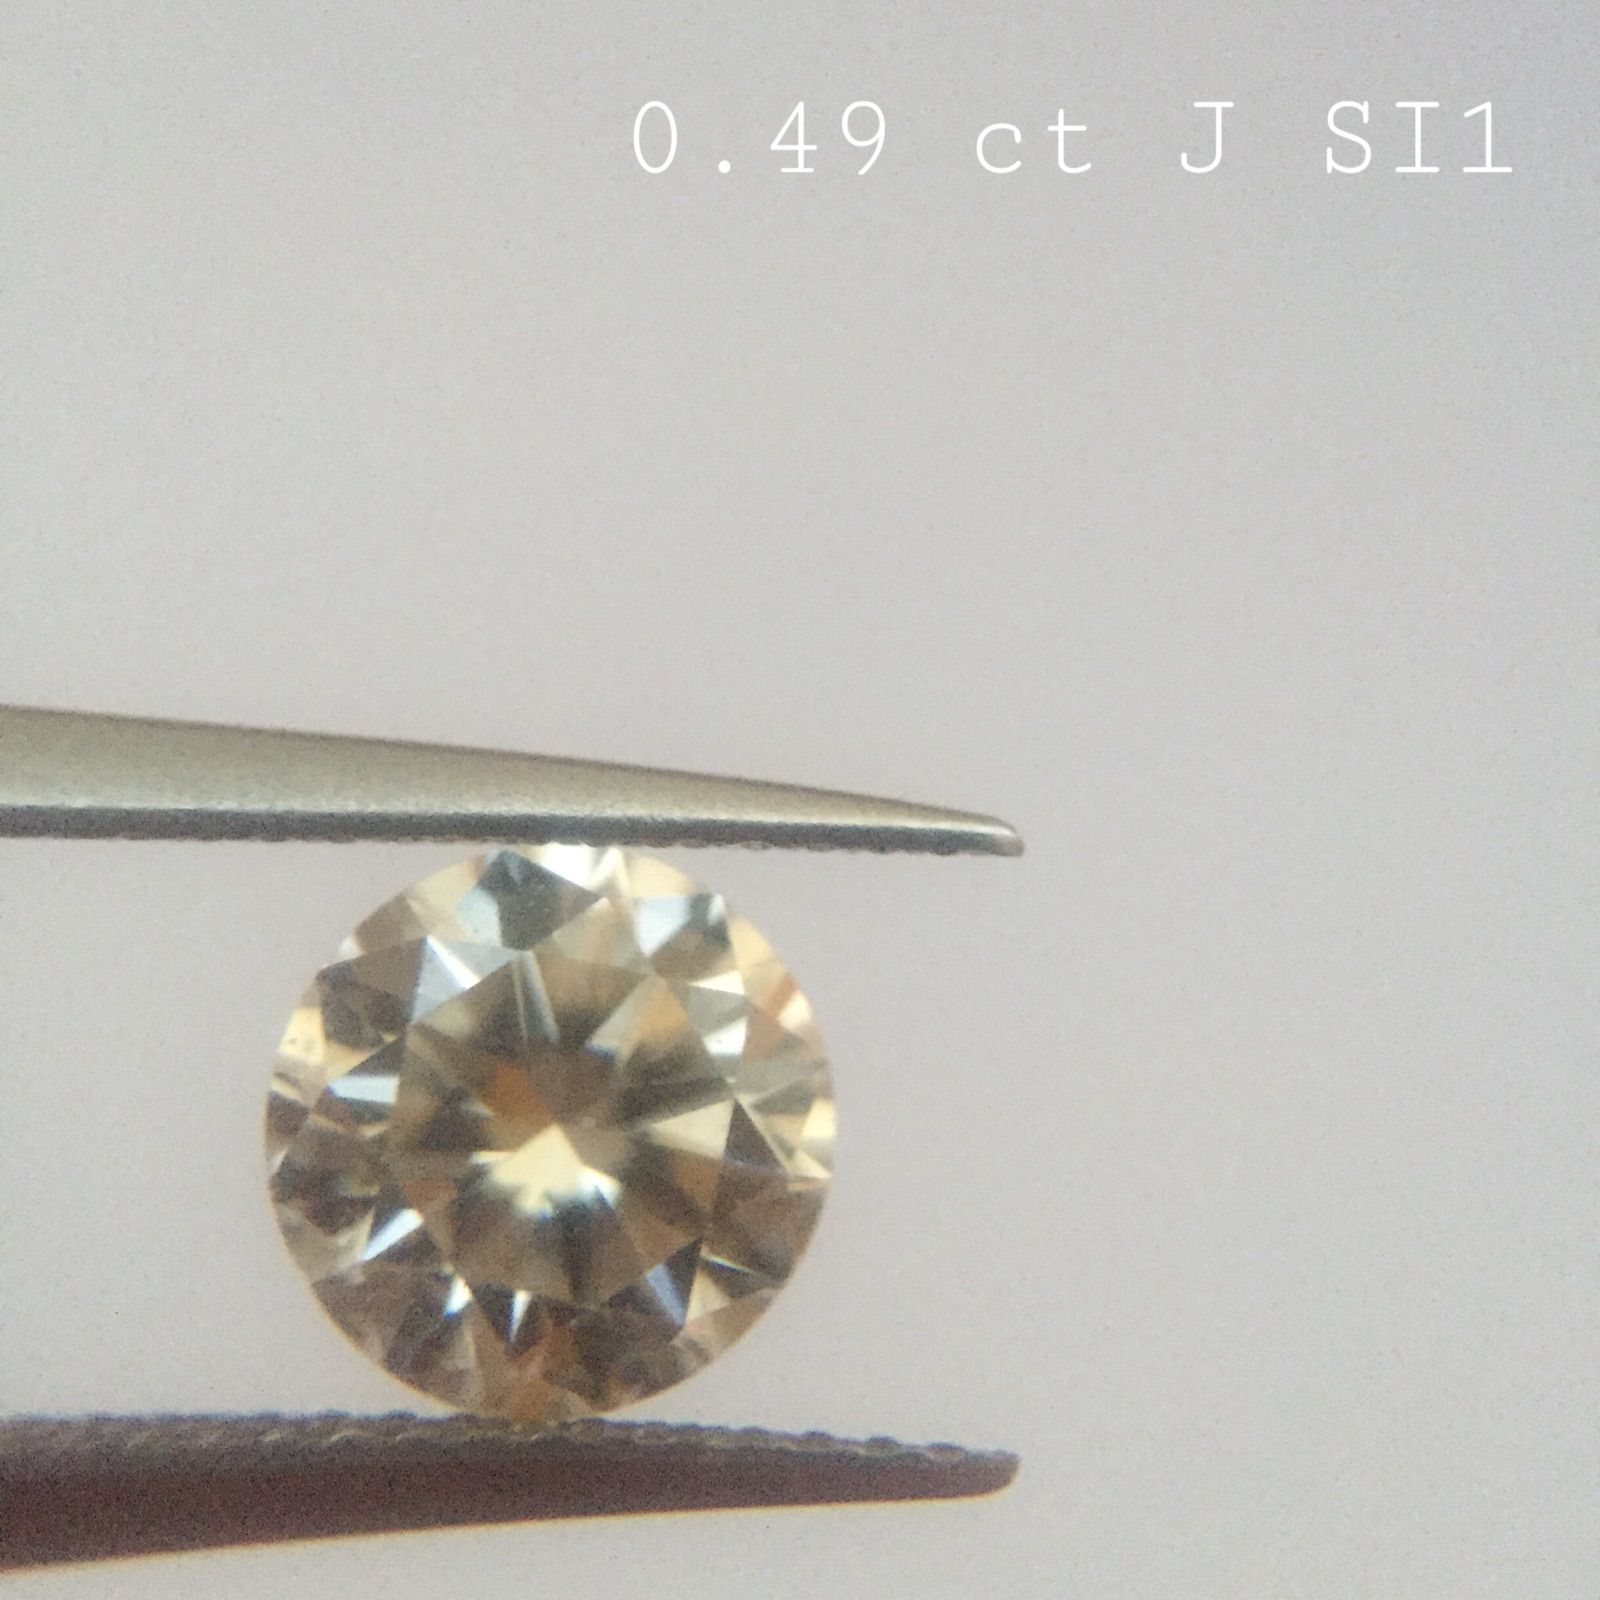 0.49 ct J color SI clarity Shape : Round Cut  Clarity : SI Color : White J Origin : Tanzania Treatment : Untreated 100% natural diamond The picture is in the same color & quality  This is nonrefundable item. This is for security issue. If you want certificate, we can send to IDL international labratory. That costs 100 dolar extra.  If you have any question, Or any spesific requirement, Or selection of any diamond lot, Just send an email : gemaddicted(at)gmail.com  Regards, Grand Bazaar…